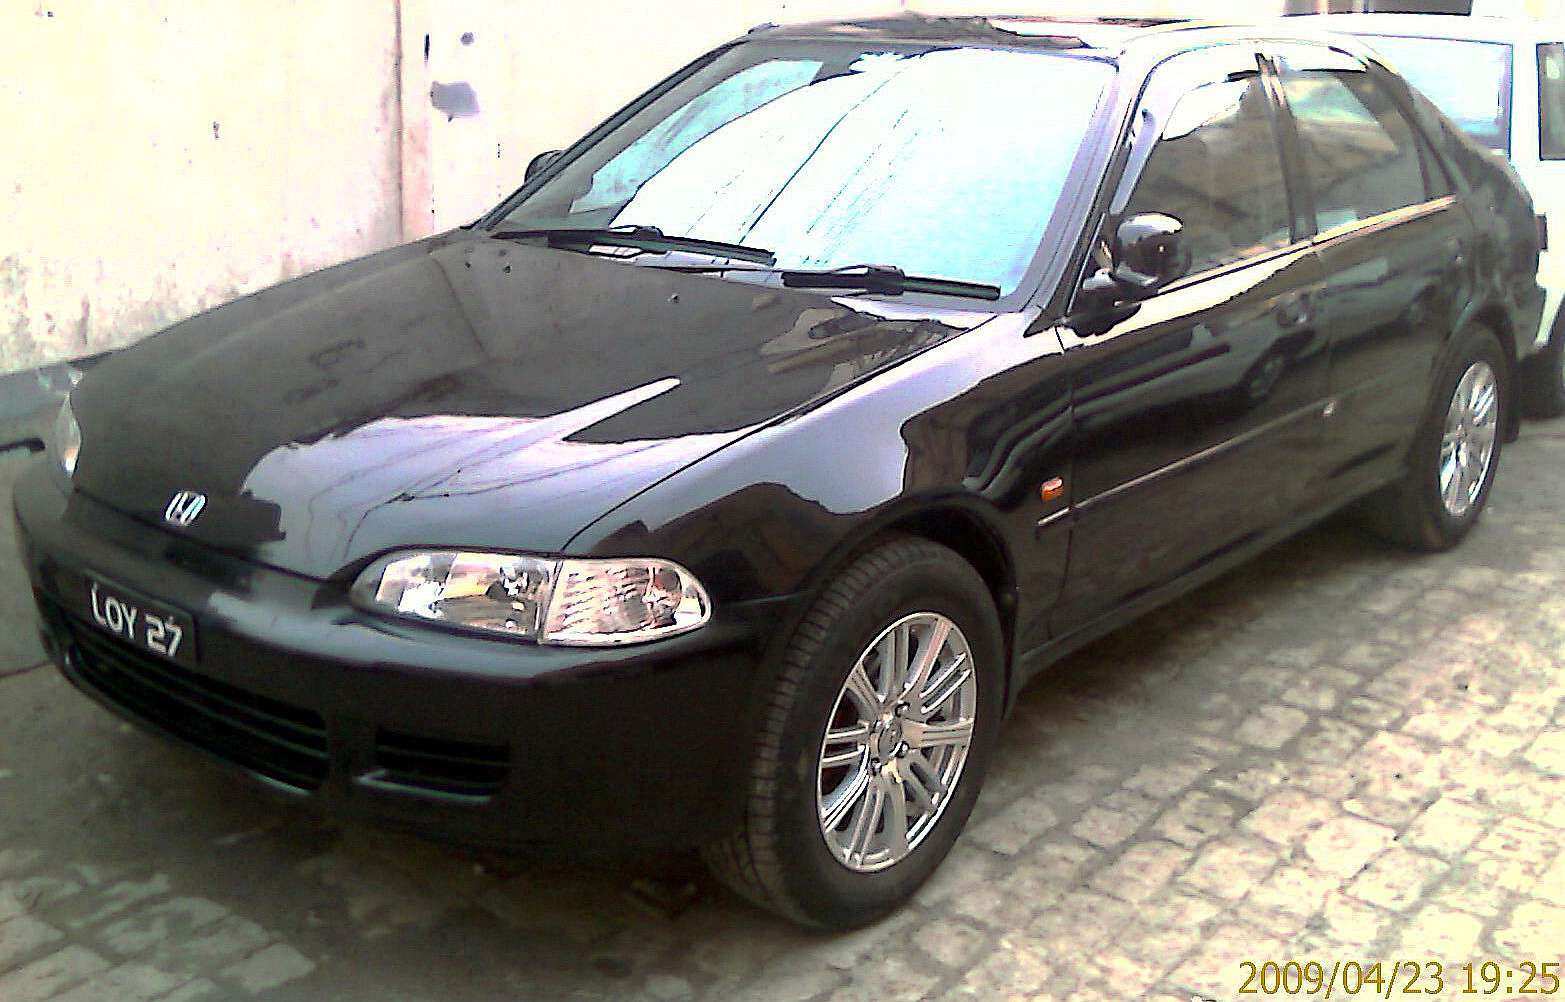 used 1994 honda civic for sale lahore pakistan free classifieds muamat. Black Bedroom Furniture Sets. Home Design Ideas